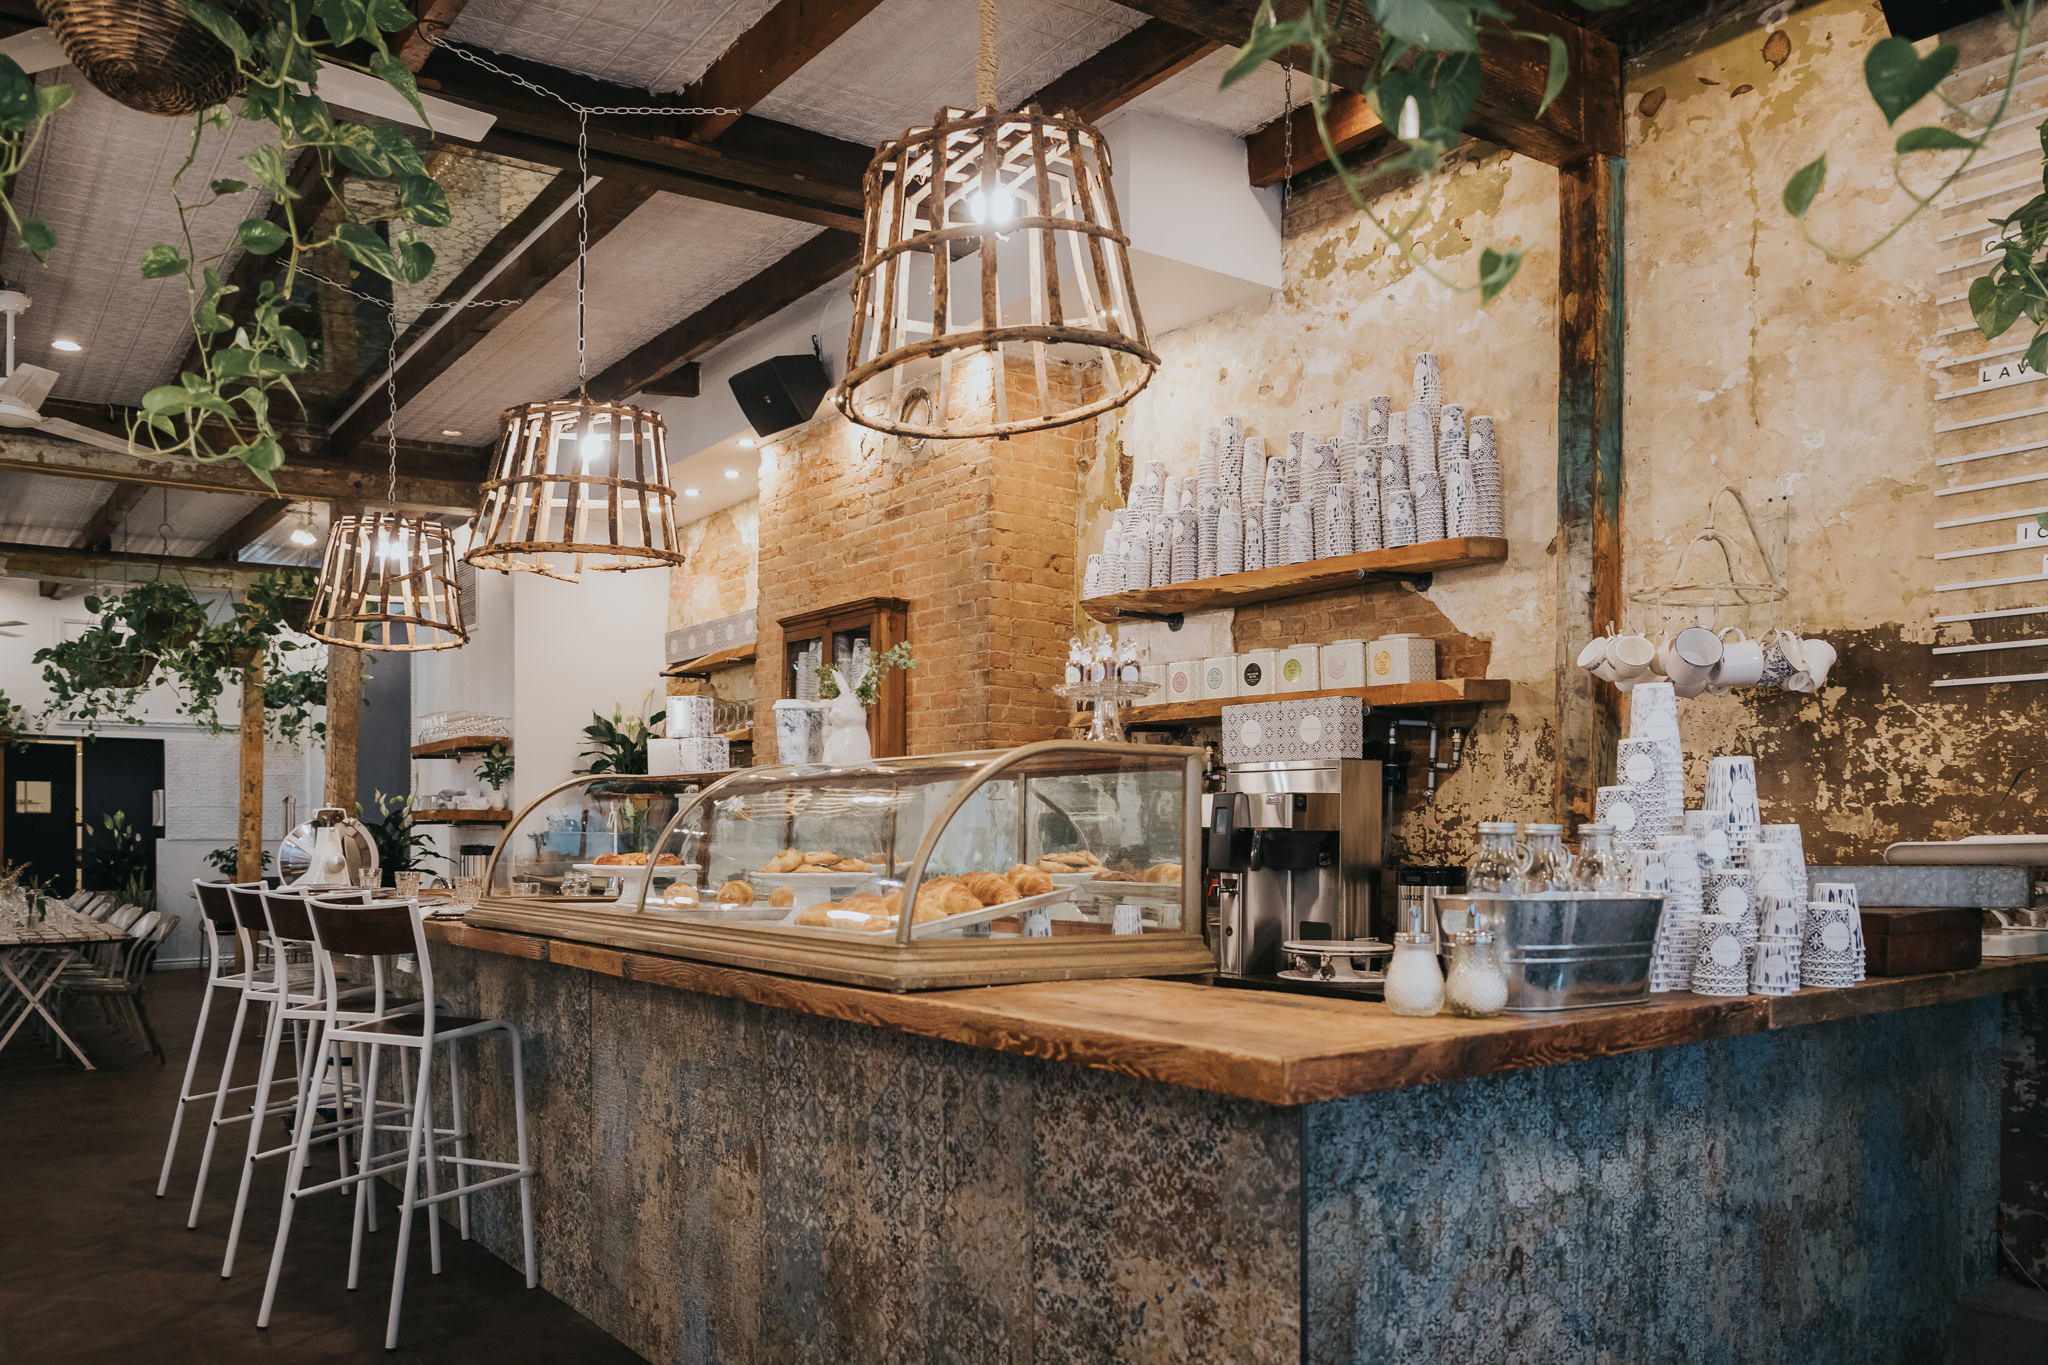 montreal - bar- high chairs - counter - pastries.jpg